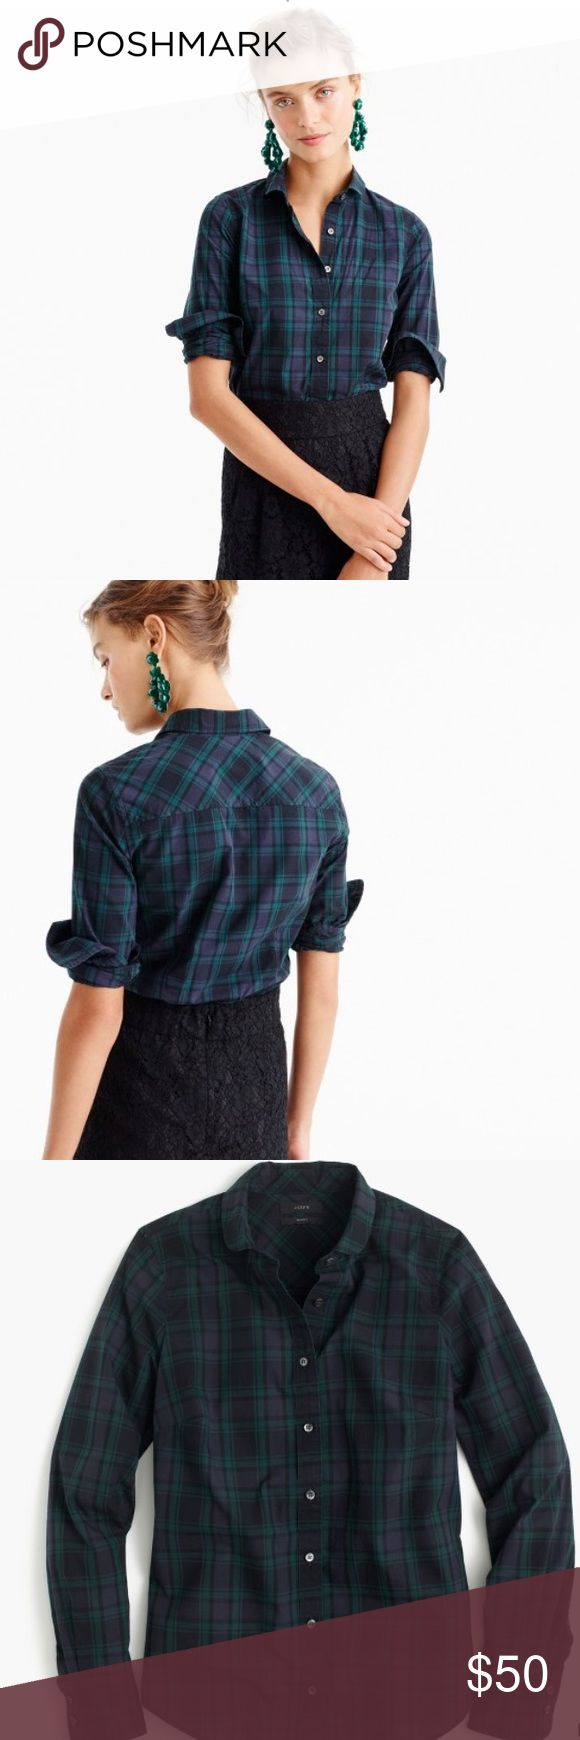 NWT J.Crew Club Crew Boyfriend Plaid Flannel shirt NWT. Color is Emerald black and navy. Boyfriend fit 26 3/4 inches long. J. Crew Tops Button Down Shirts